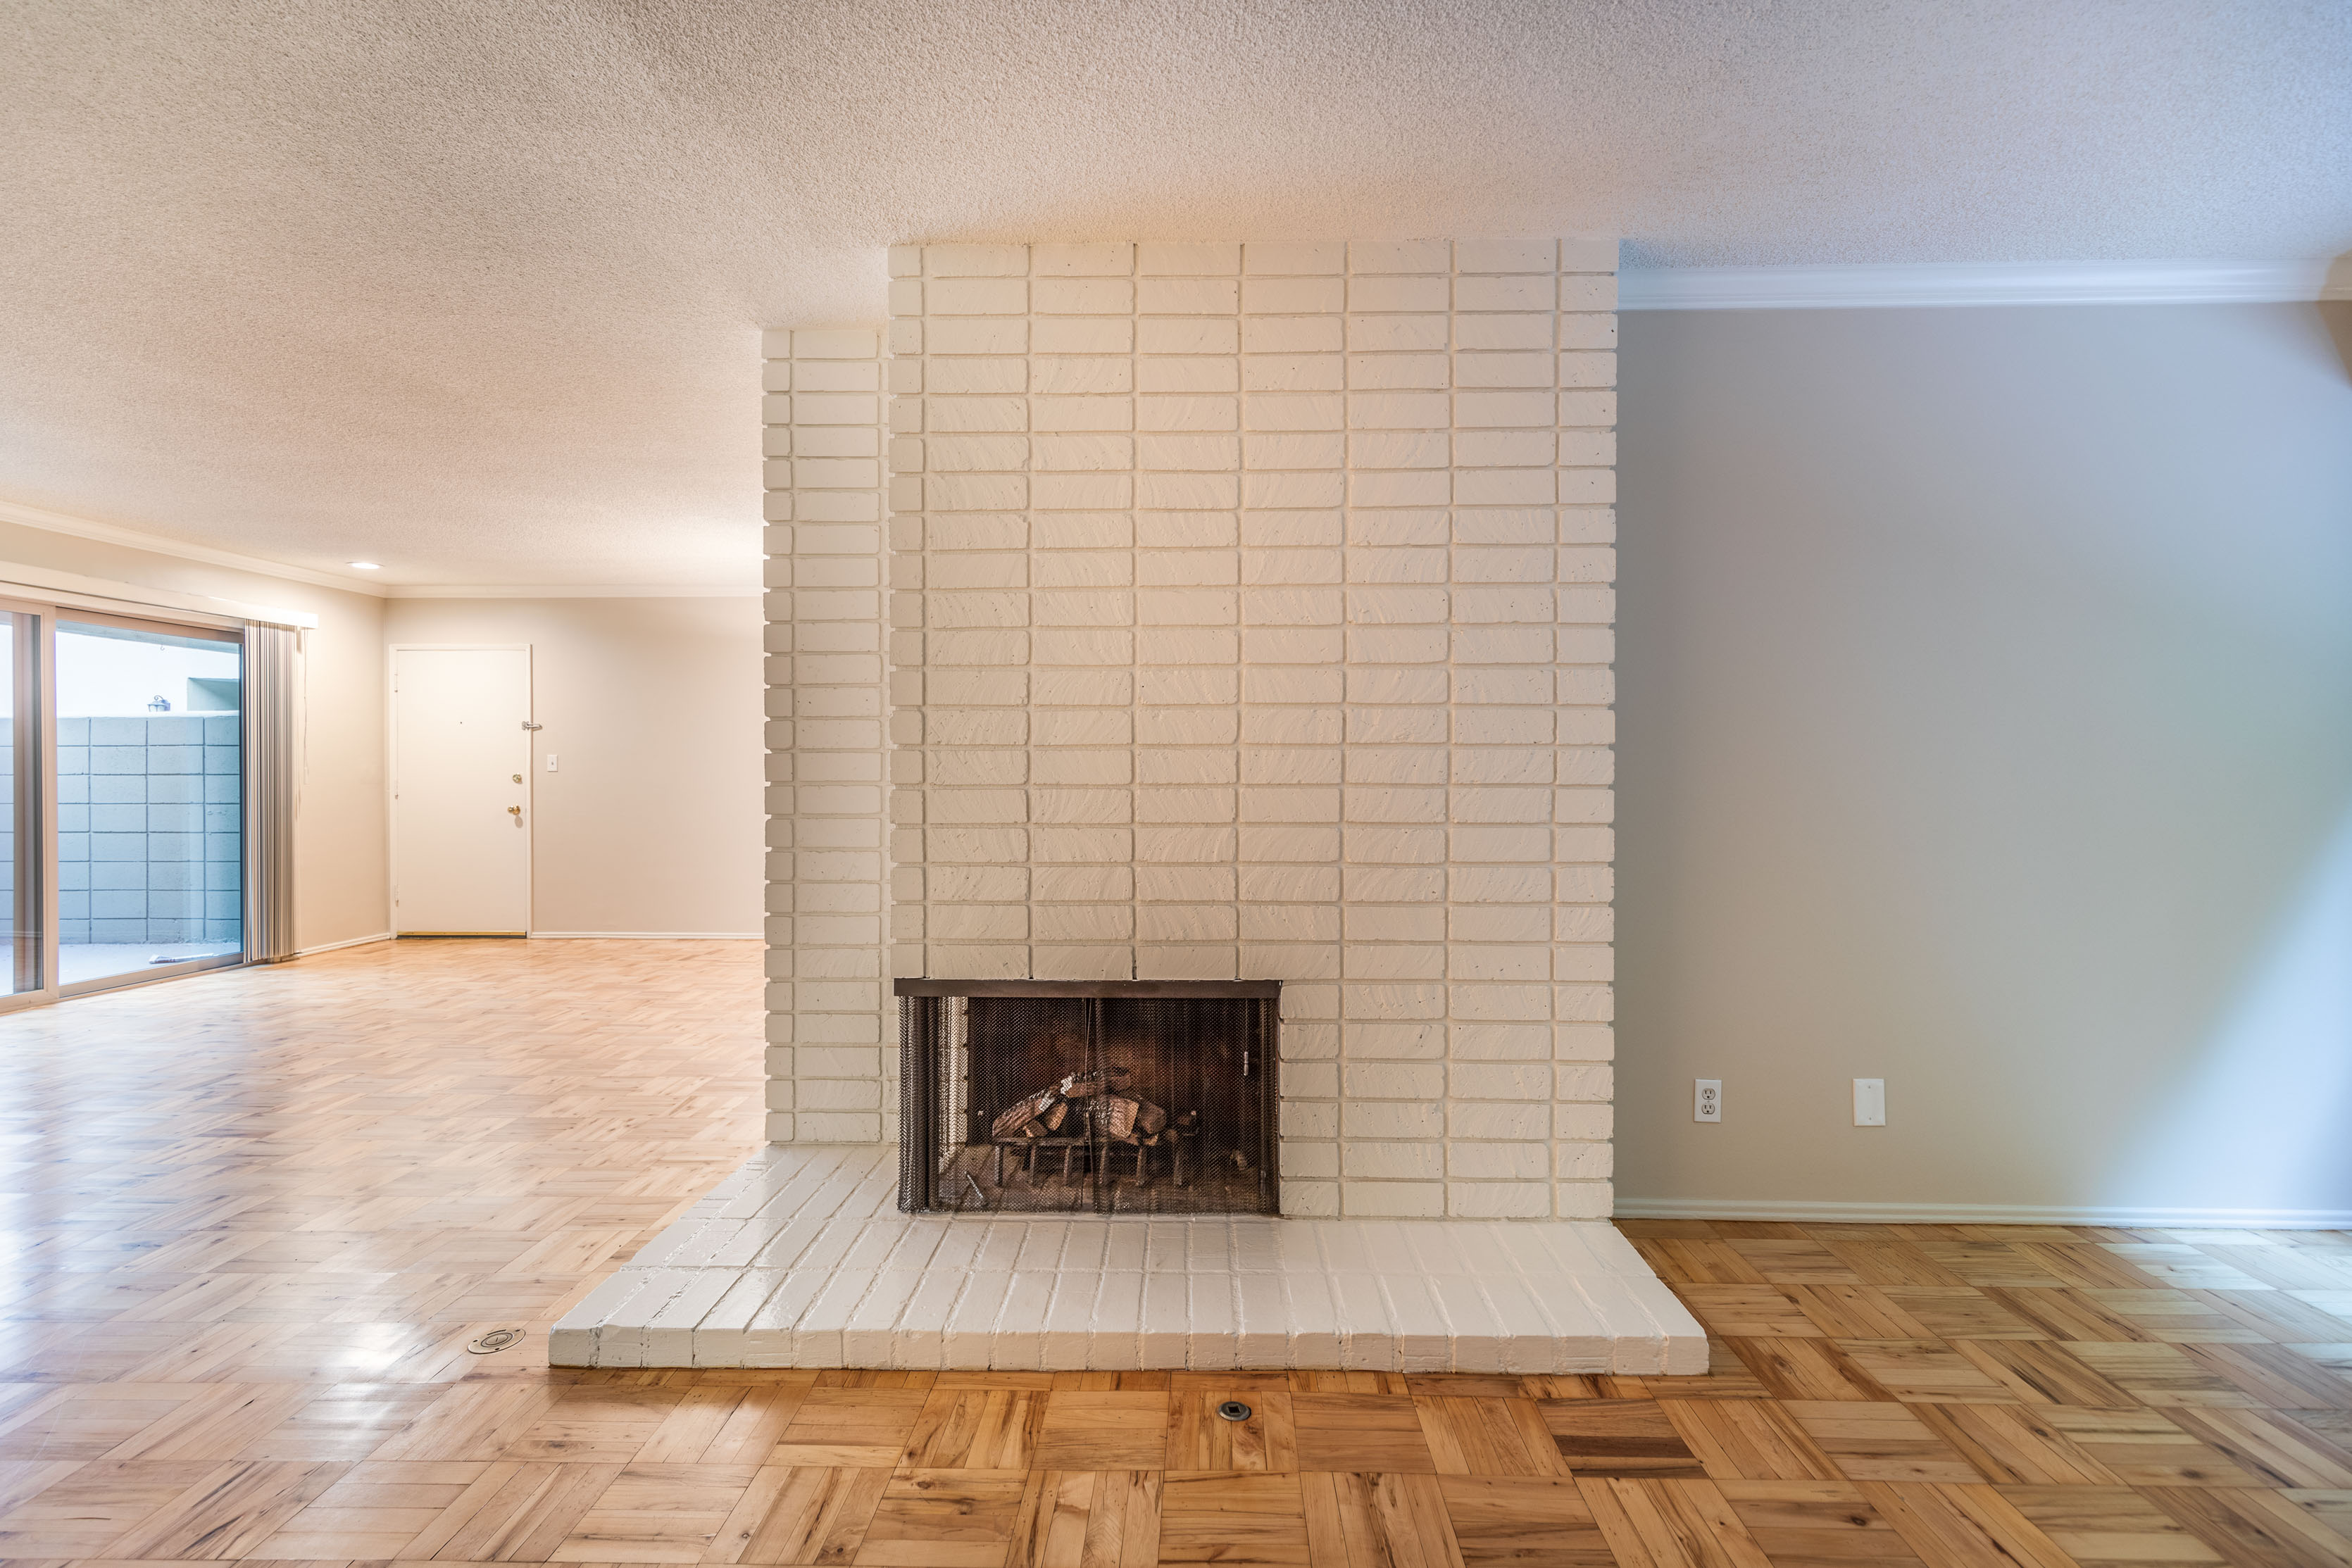 Posh Pasadena 2 Bed/2 Ba | Parking Included | Private Enclosed Patio | Brick Fireplace